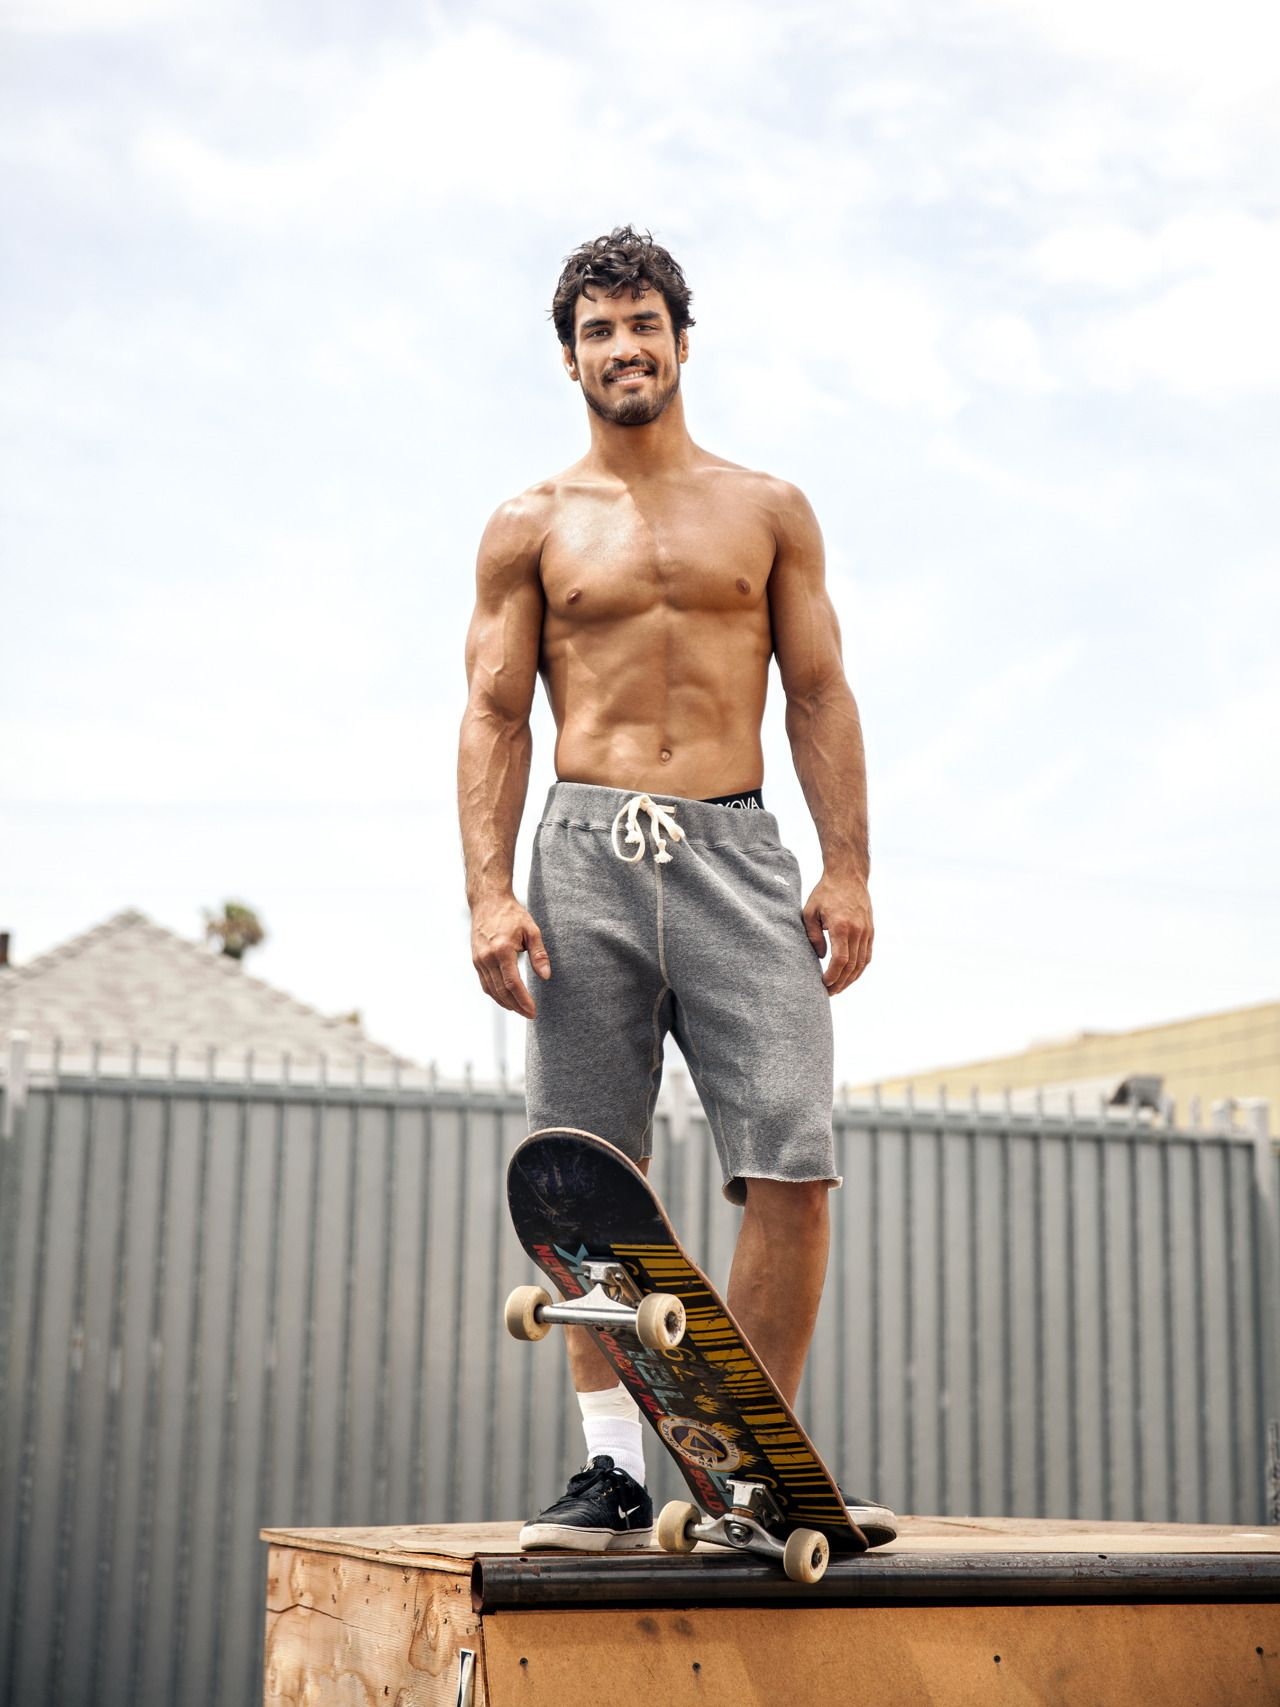 Kron Gracie | emotion picture | Pinterest | Kron gracie ...